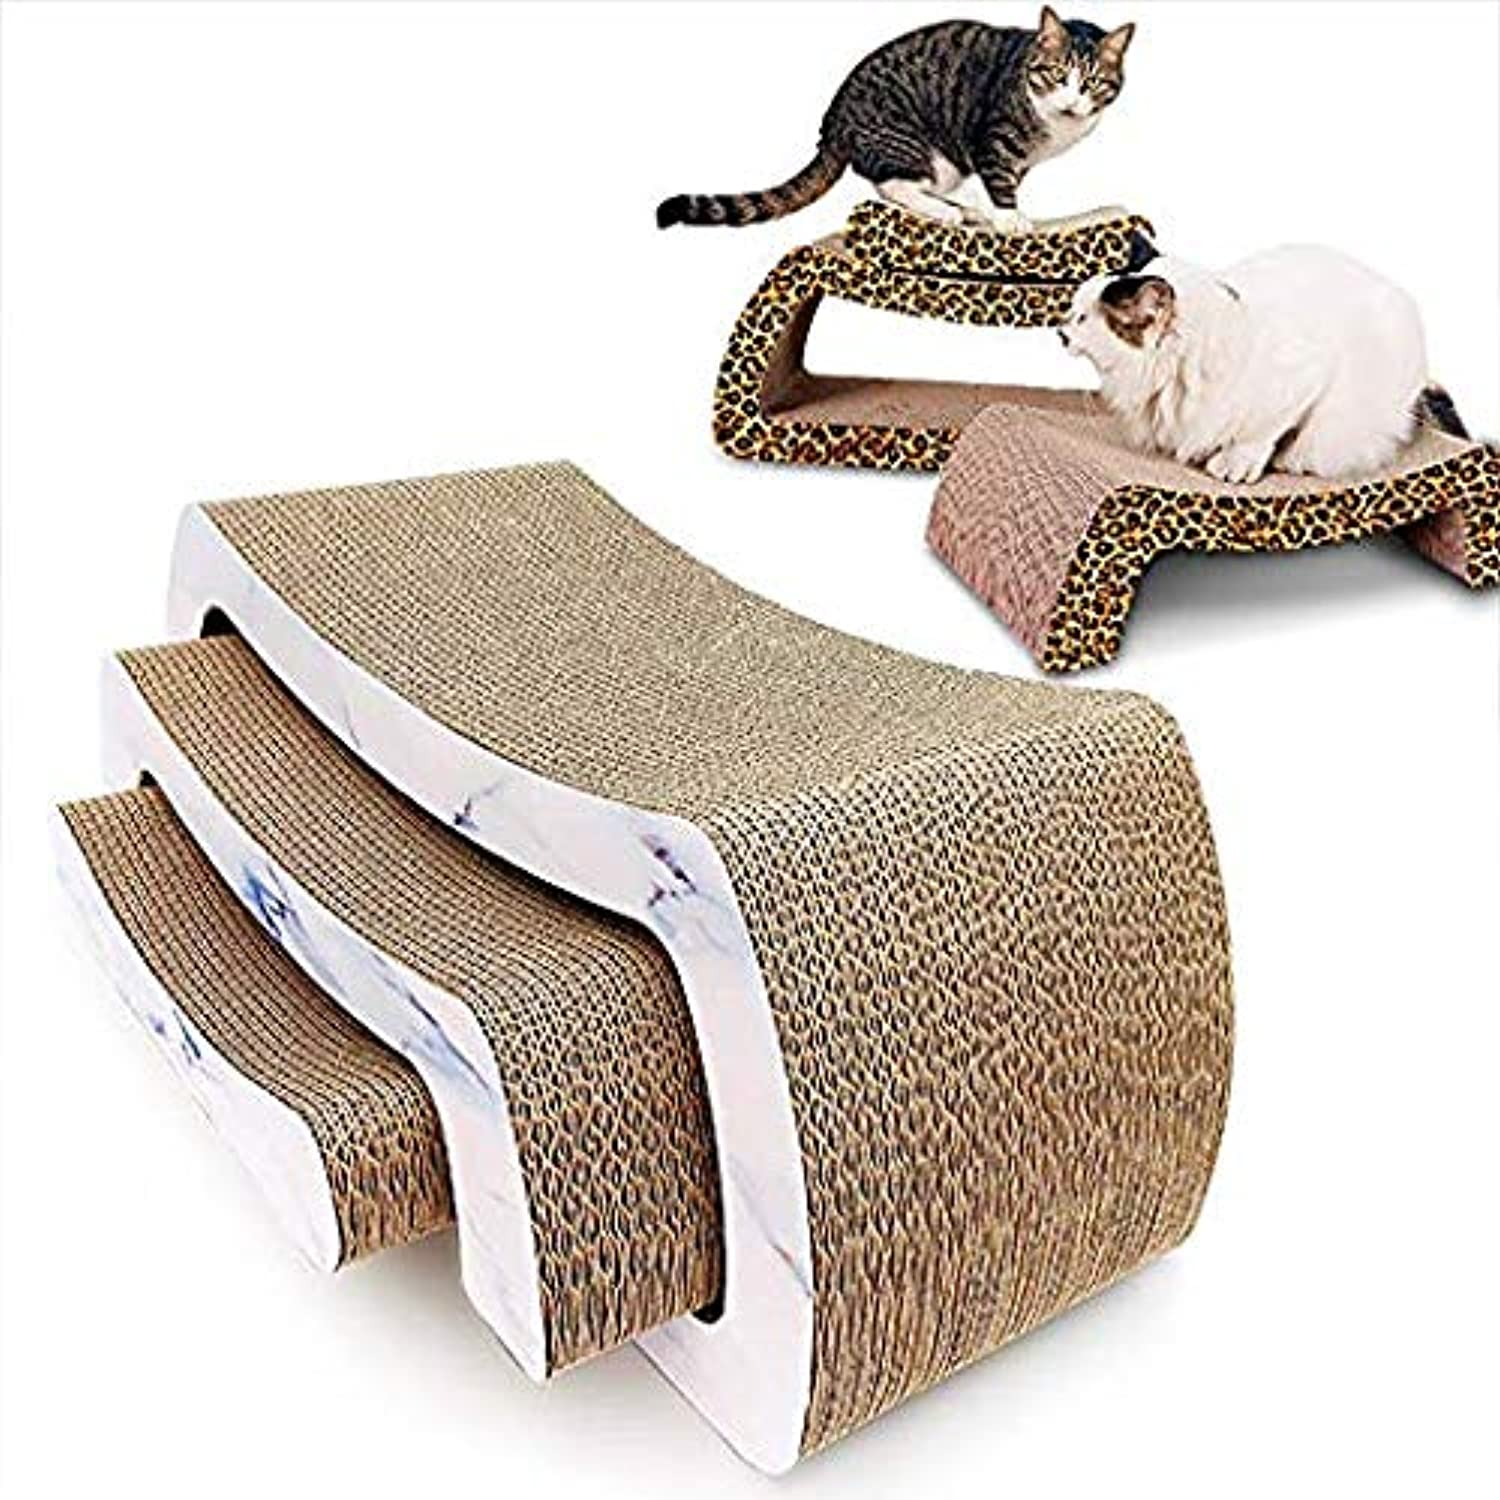 Cat Scratch Board,Folded MultiLayer MShaped Corrugated Paper cat Scratch Board cat Claw Toy for Multiple Cats to Play Together